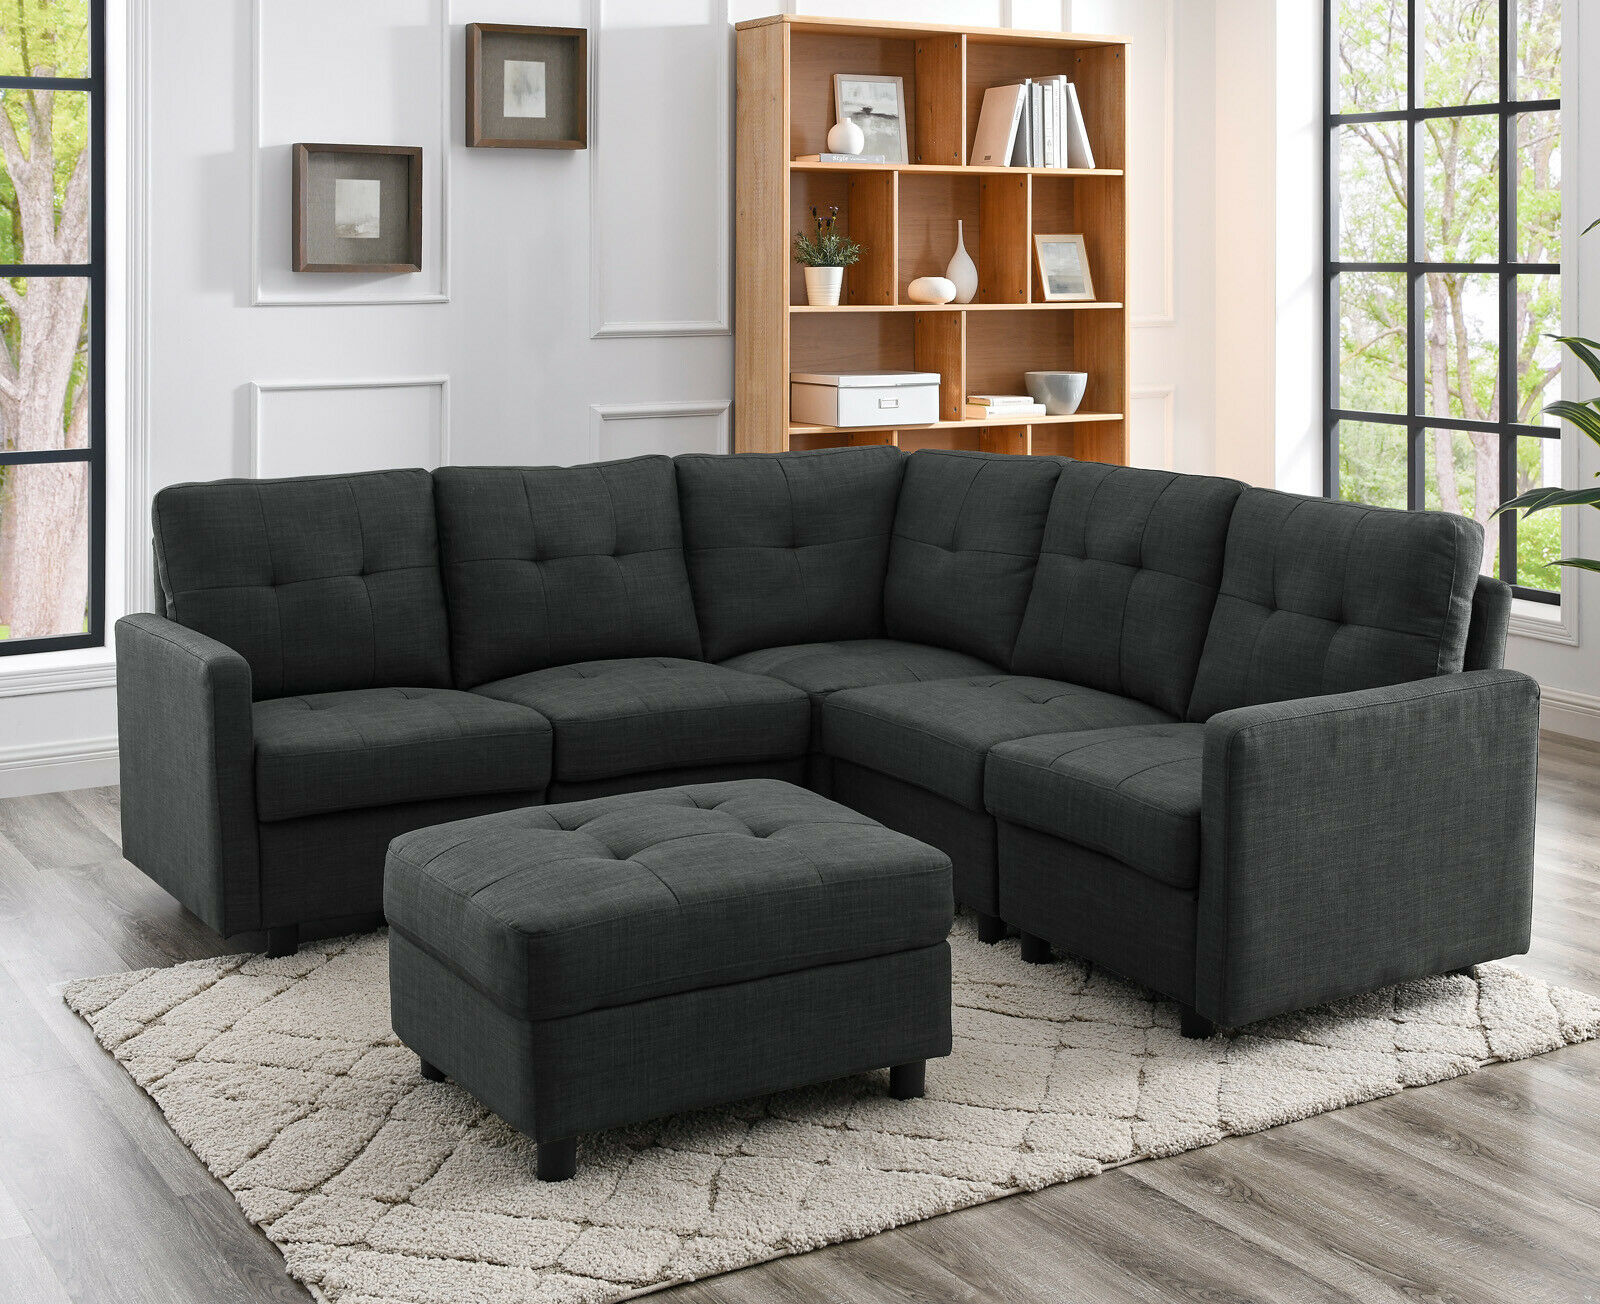 Contemporary Convertible Sectional Sofa Linen Fabric Couch for Living Room Black